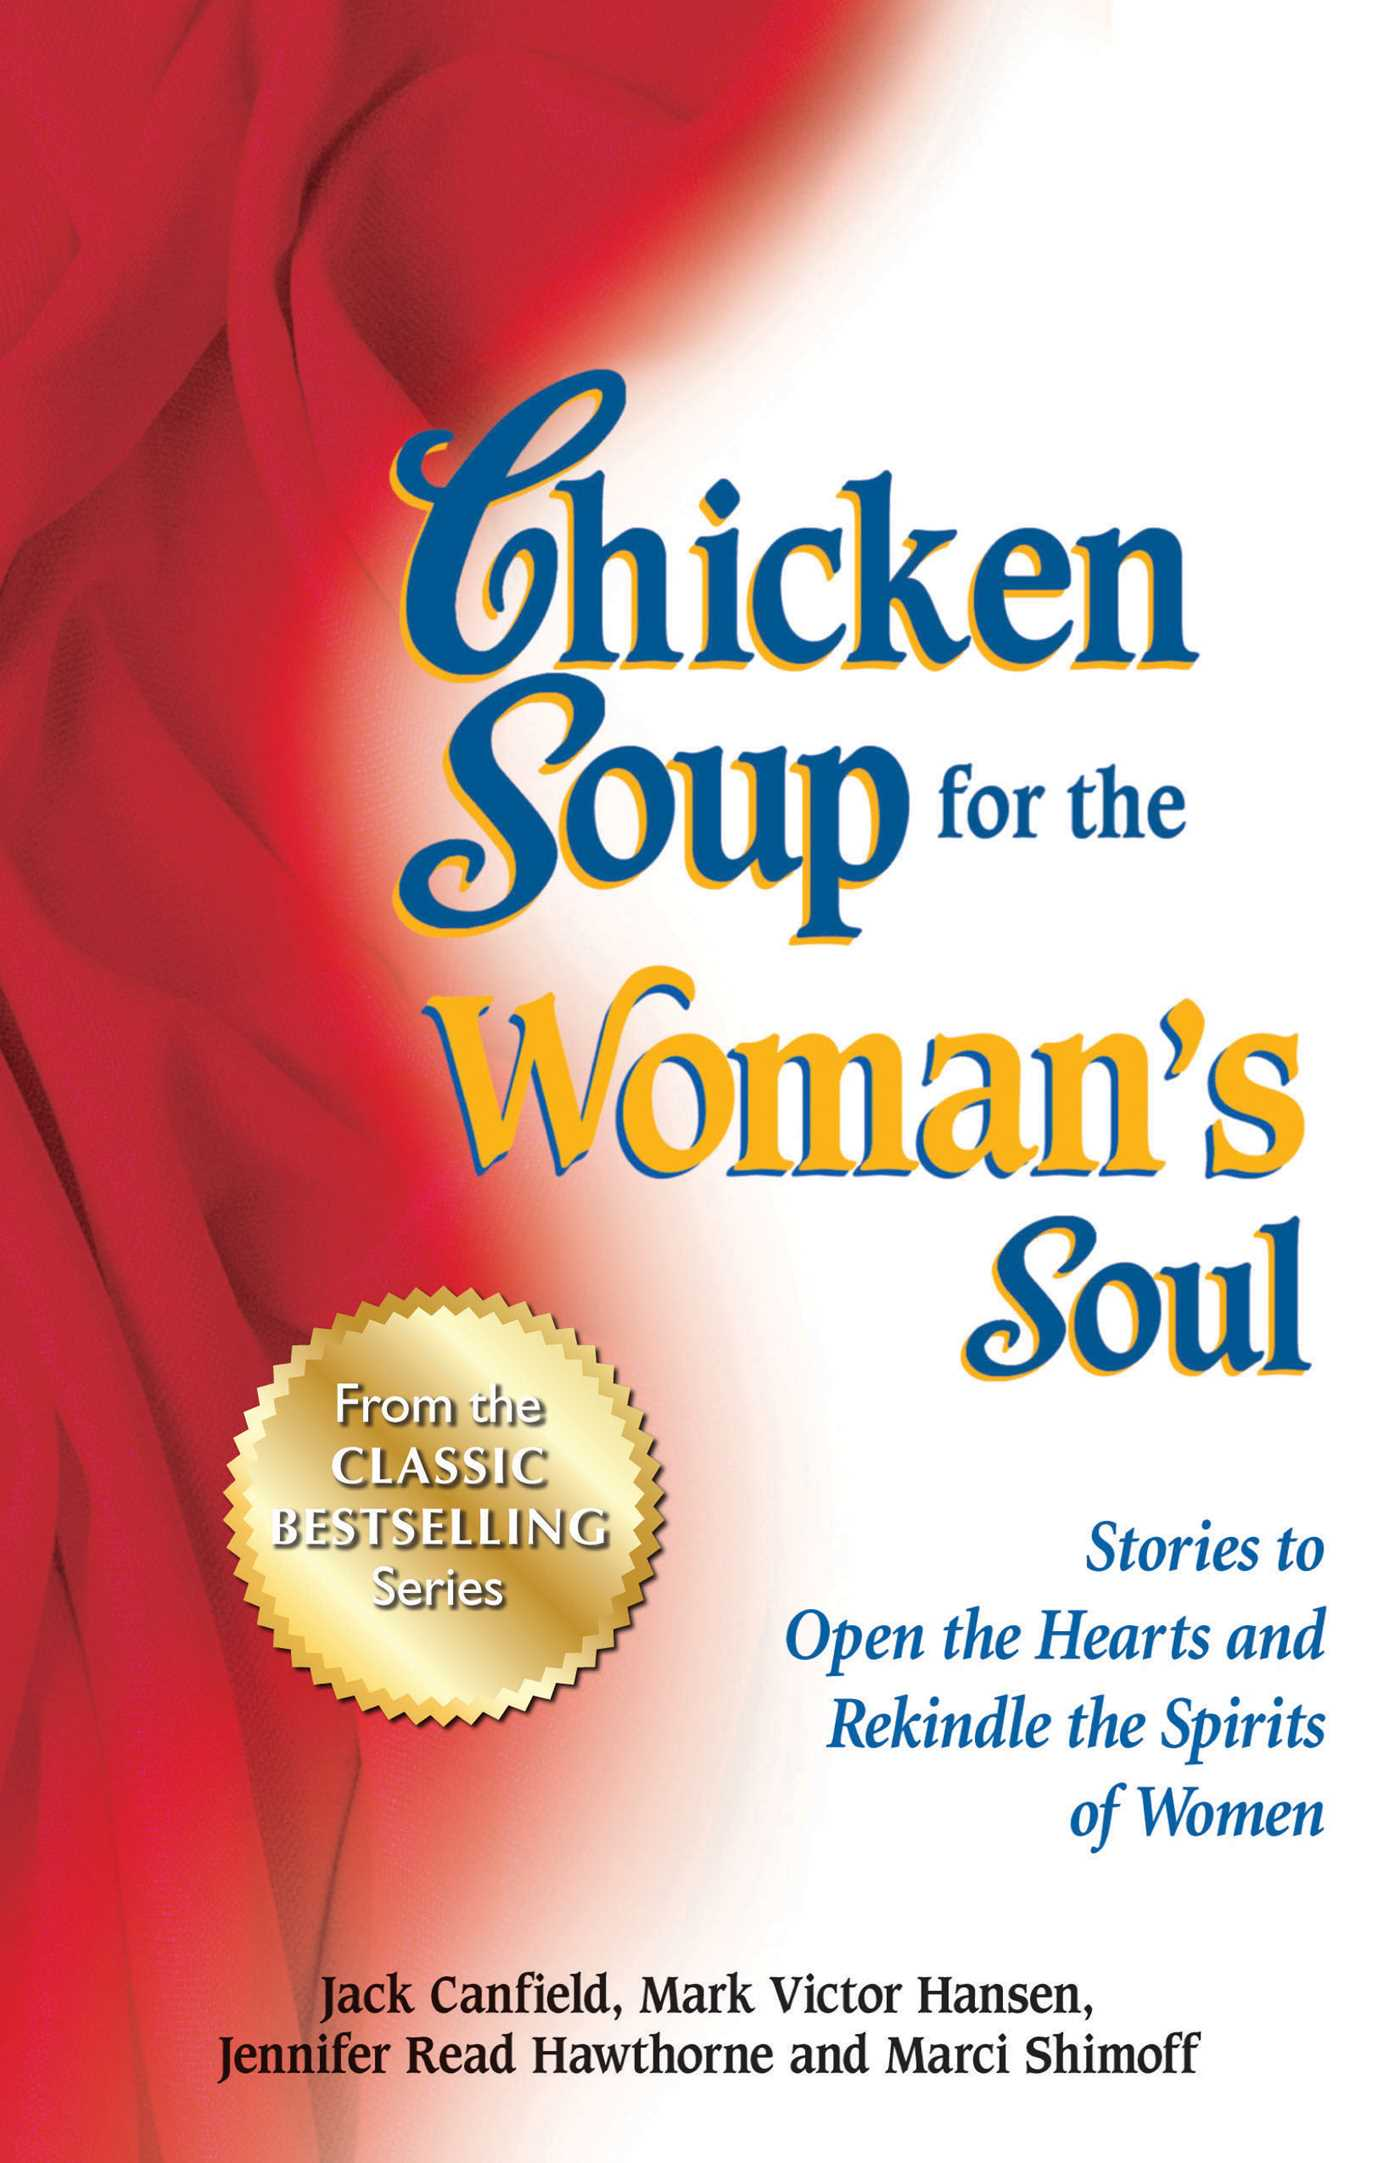 Chicken Soup for the Woman's Soul Stories to Open the Hearts and Rekindle the Spirits of Women